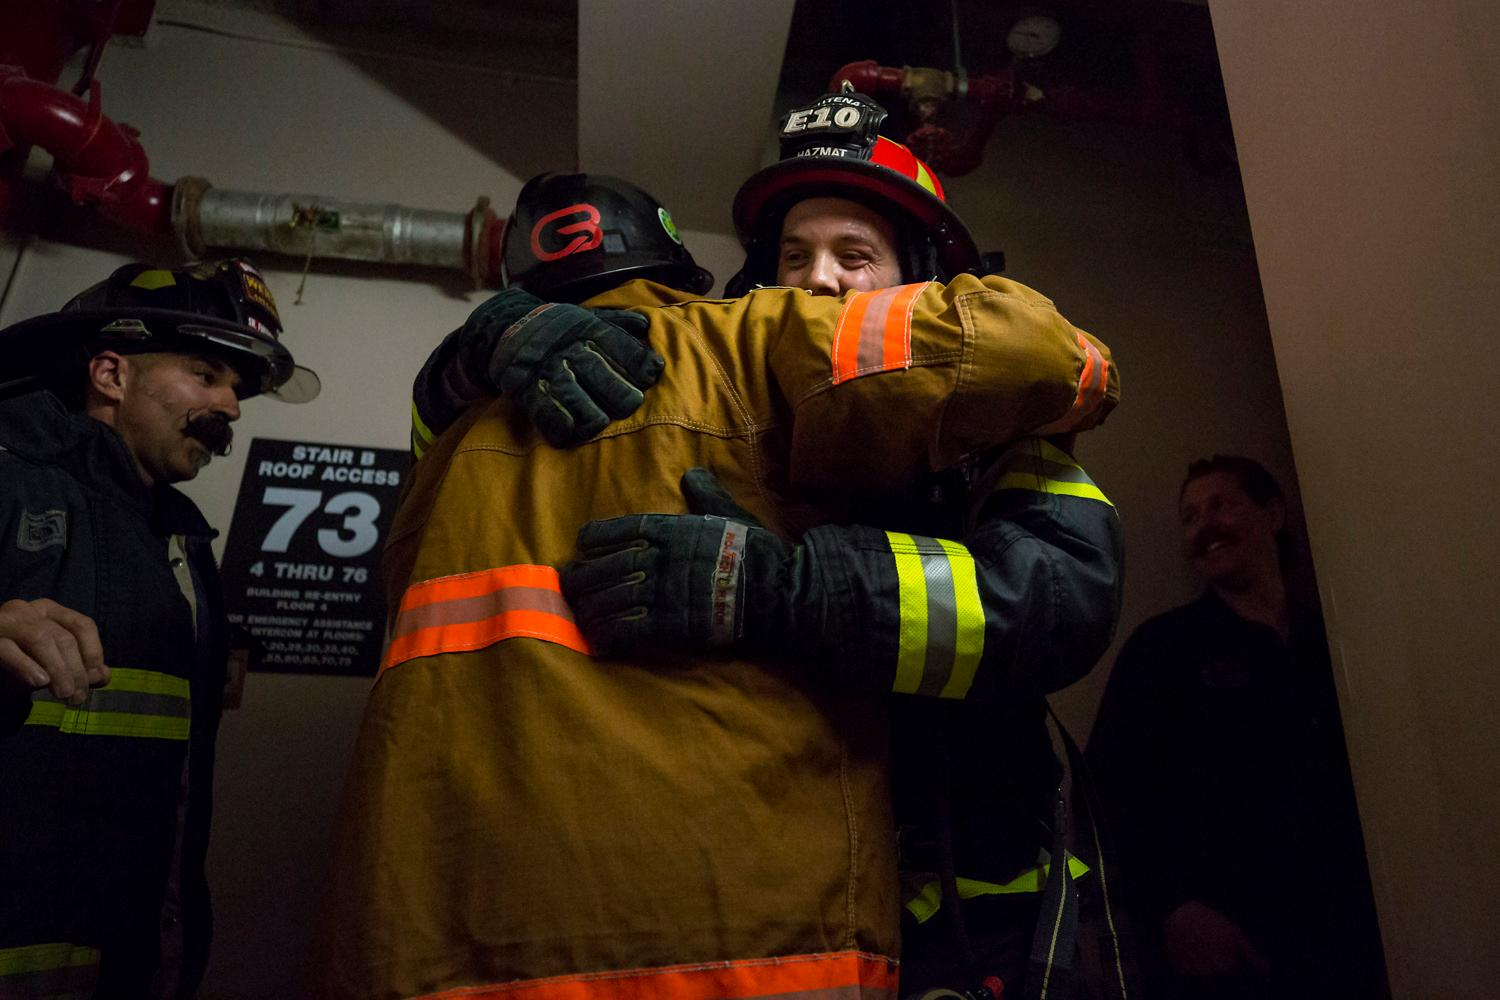 AJ from Warm 106.9 hugs Boise firefighter Rich Brown after completing a training climb up the 69 floors of the Columbia Tower Friday, March 9, 2018. 2,000 firefighters are expected the 69 floors (1,356 stairs!) on Sunday for the Scott Firefighter Stairclimb to benefit the Leukemia & Lymphoma Society. To donate to this cause, please visit www.firefighterstairclimb.org. (Sy Bean / Seattle Refined)